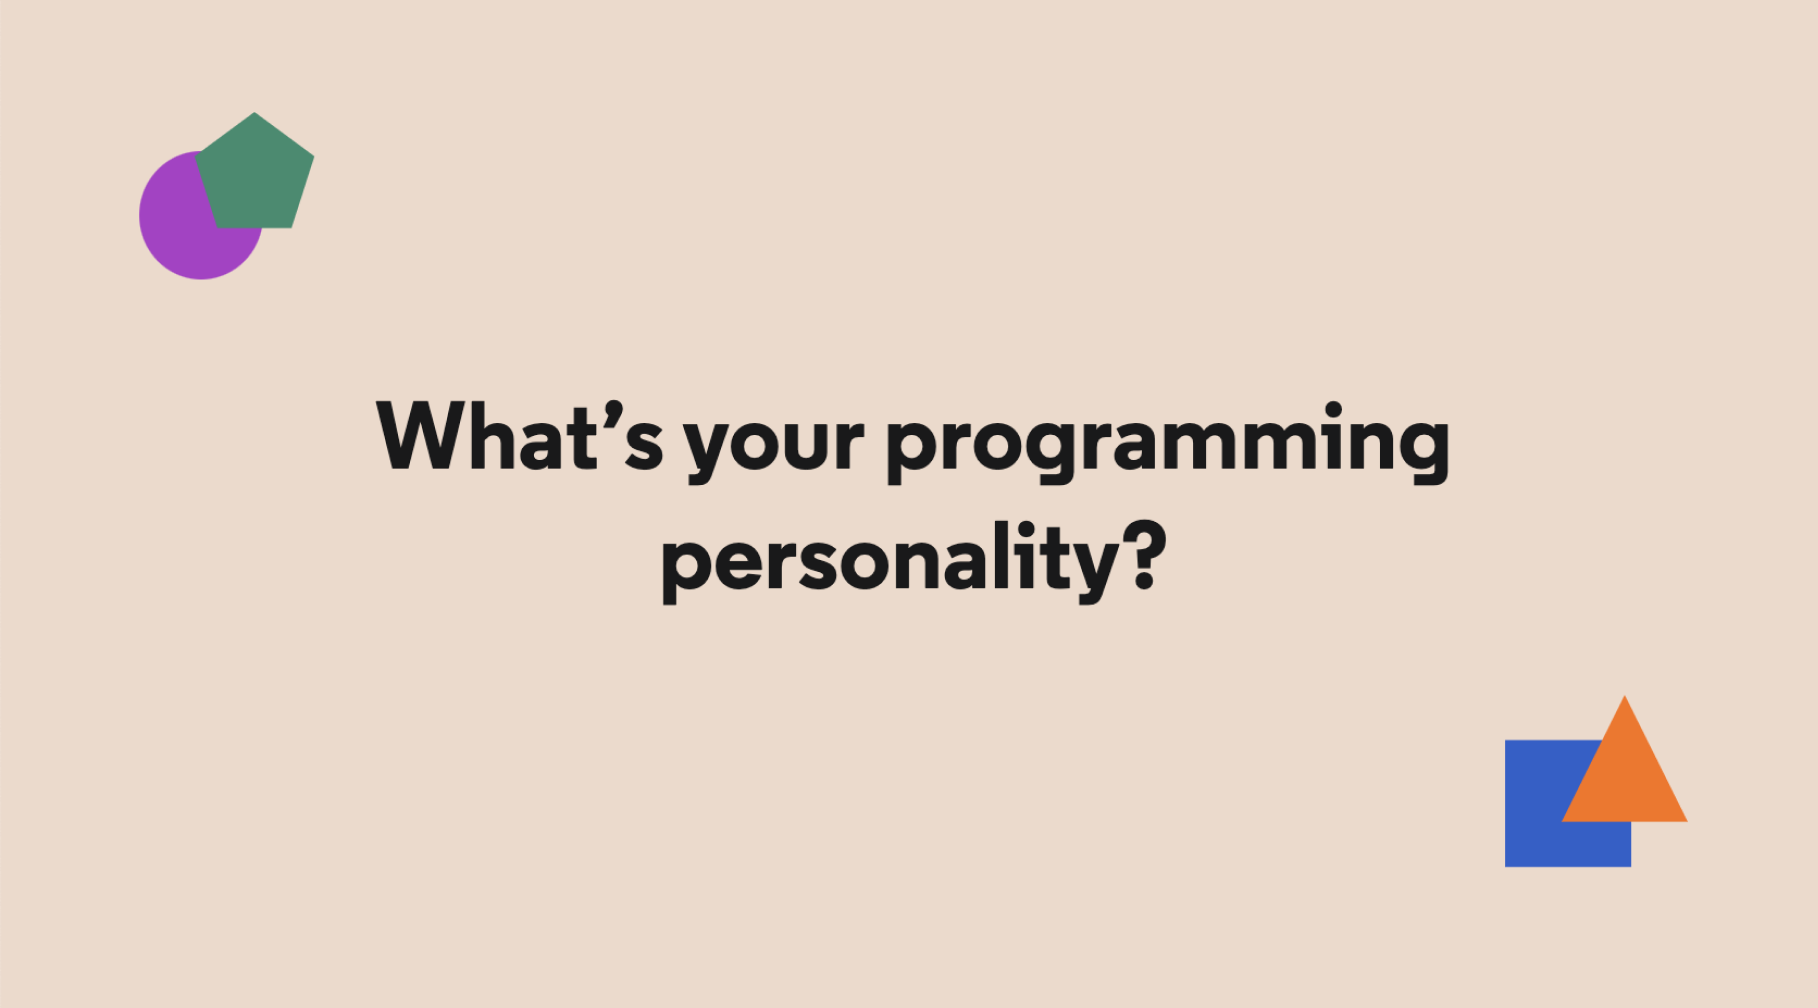 What's your programming personality?